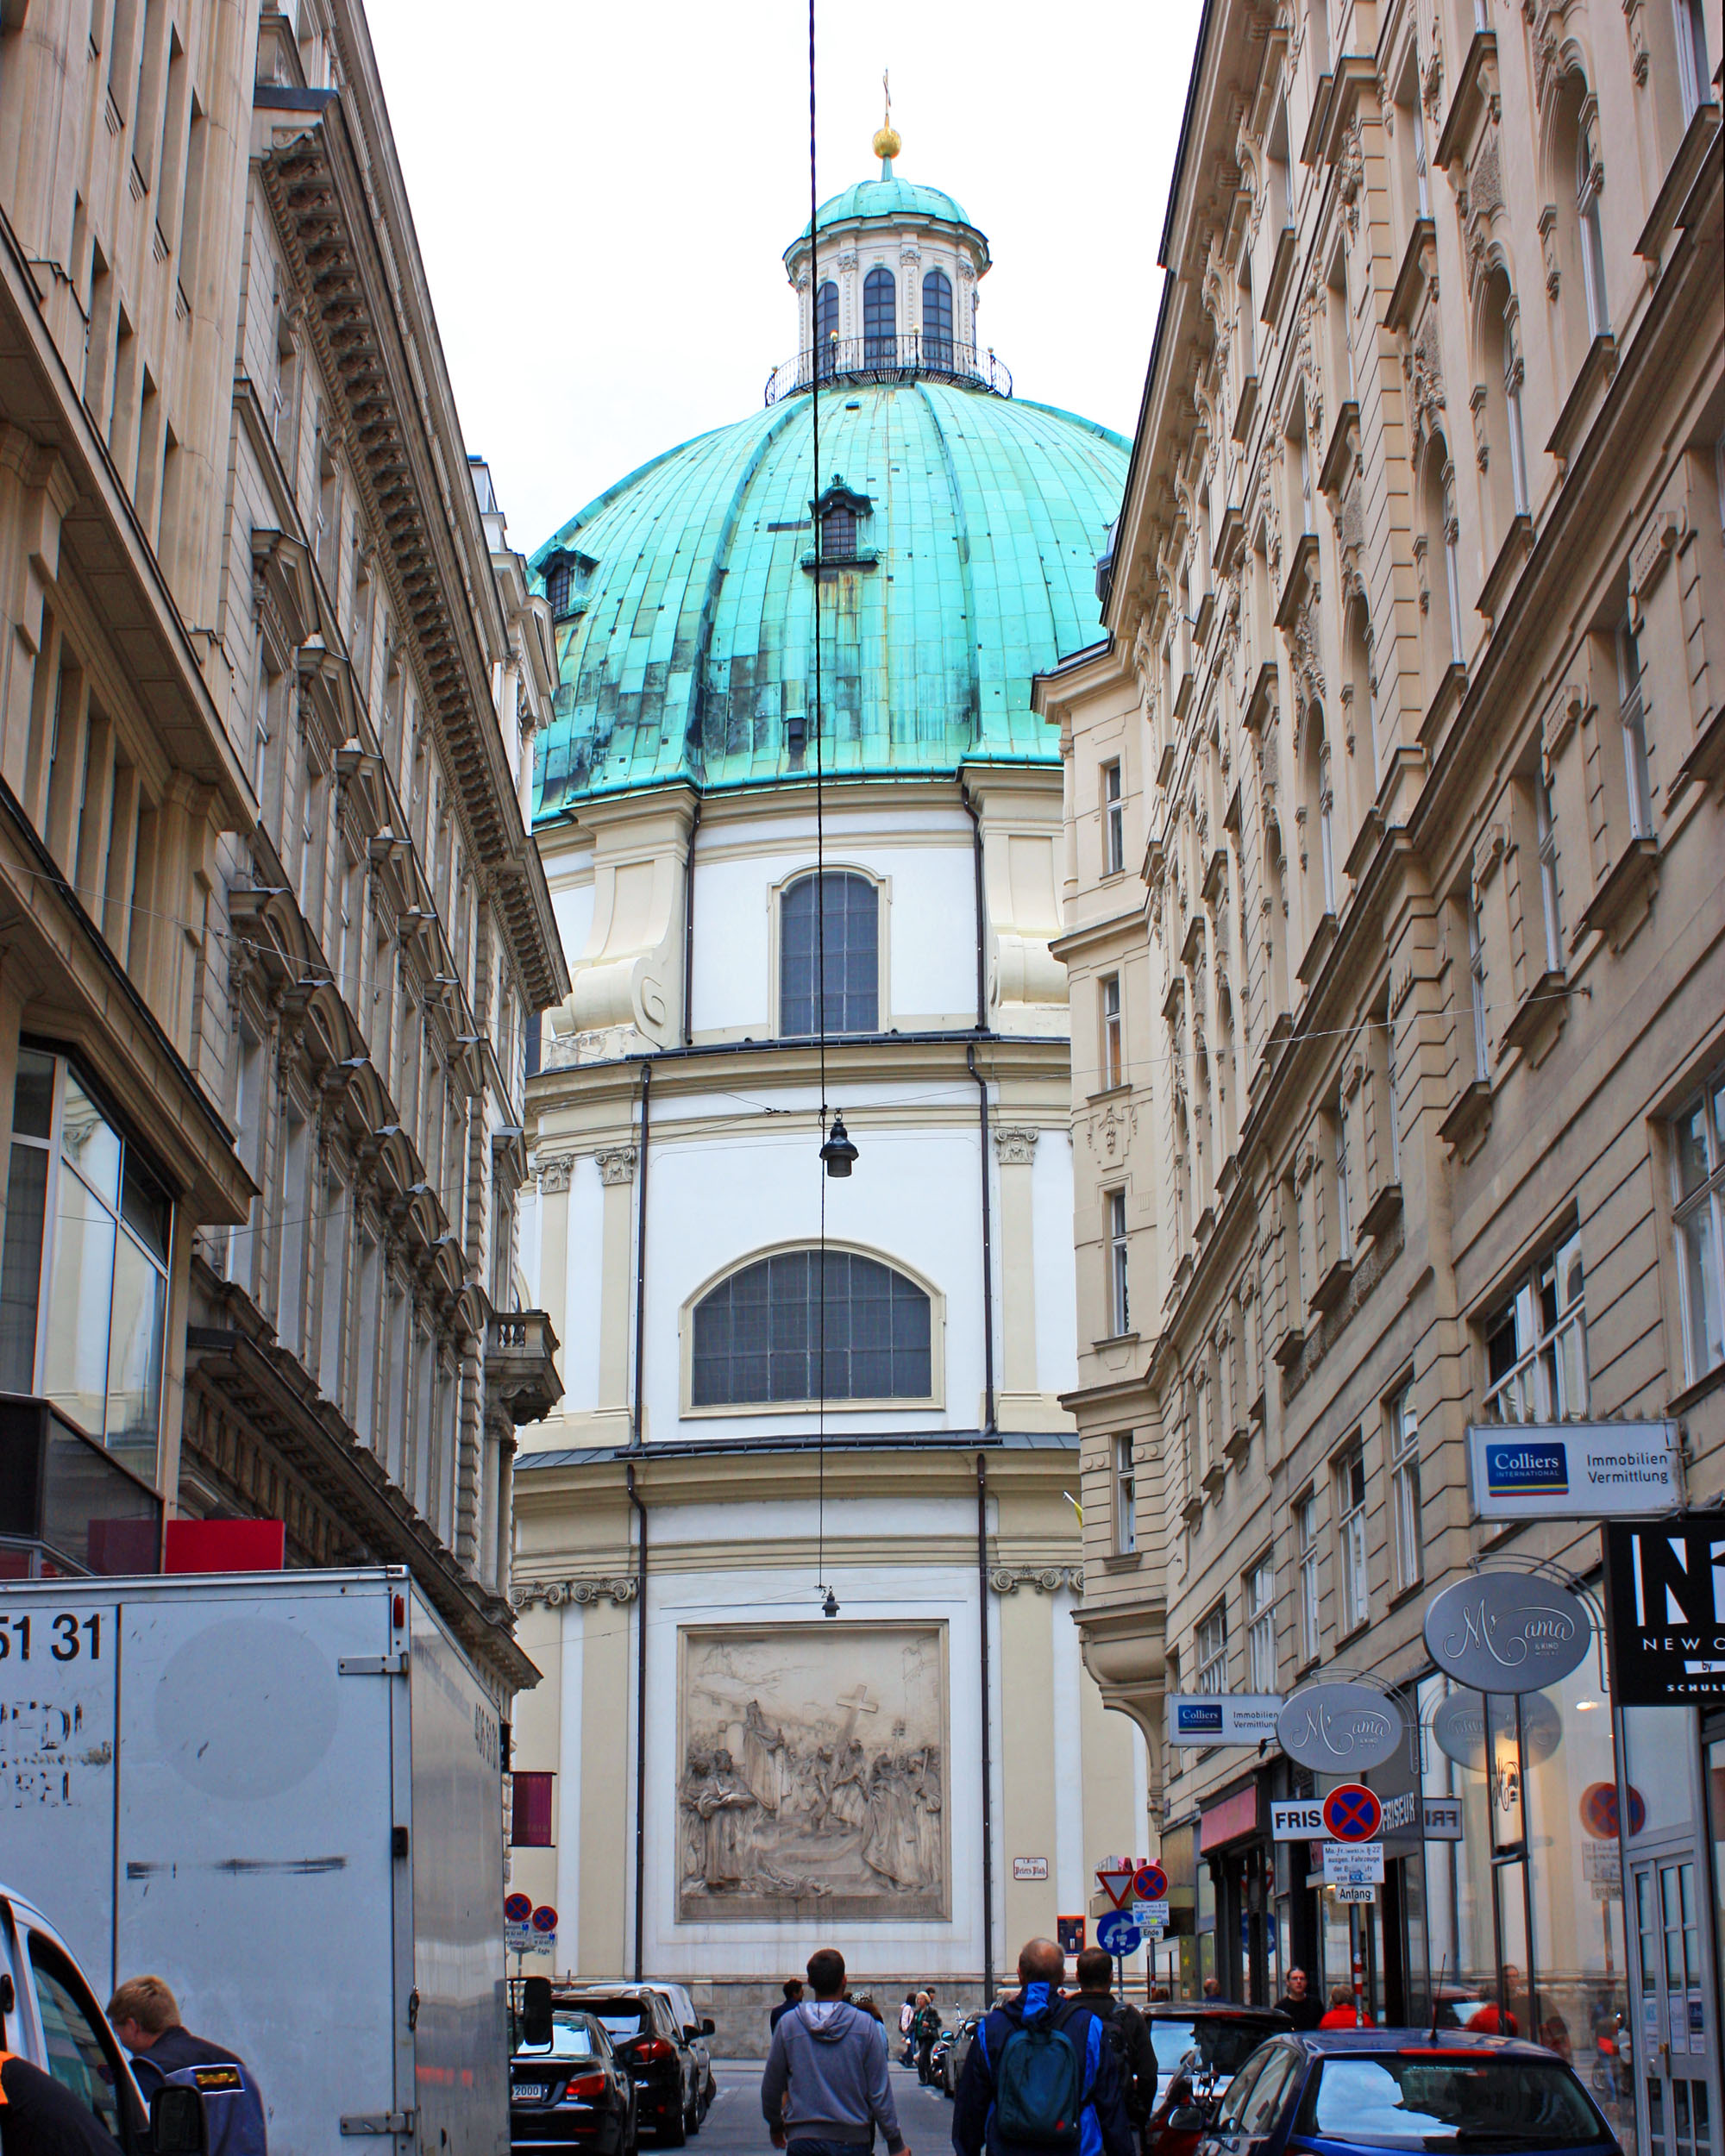 Vienna city center with St. Peter's Church.